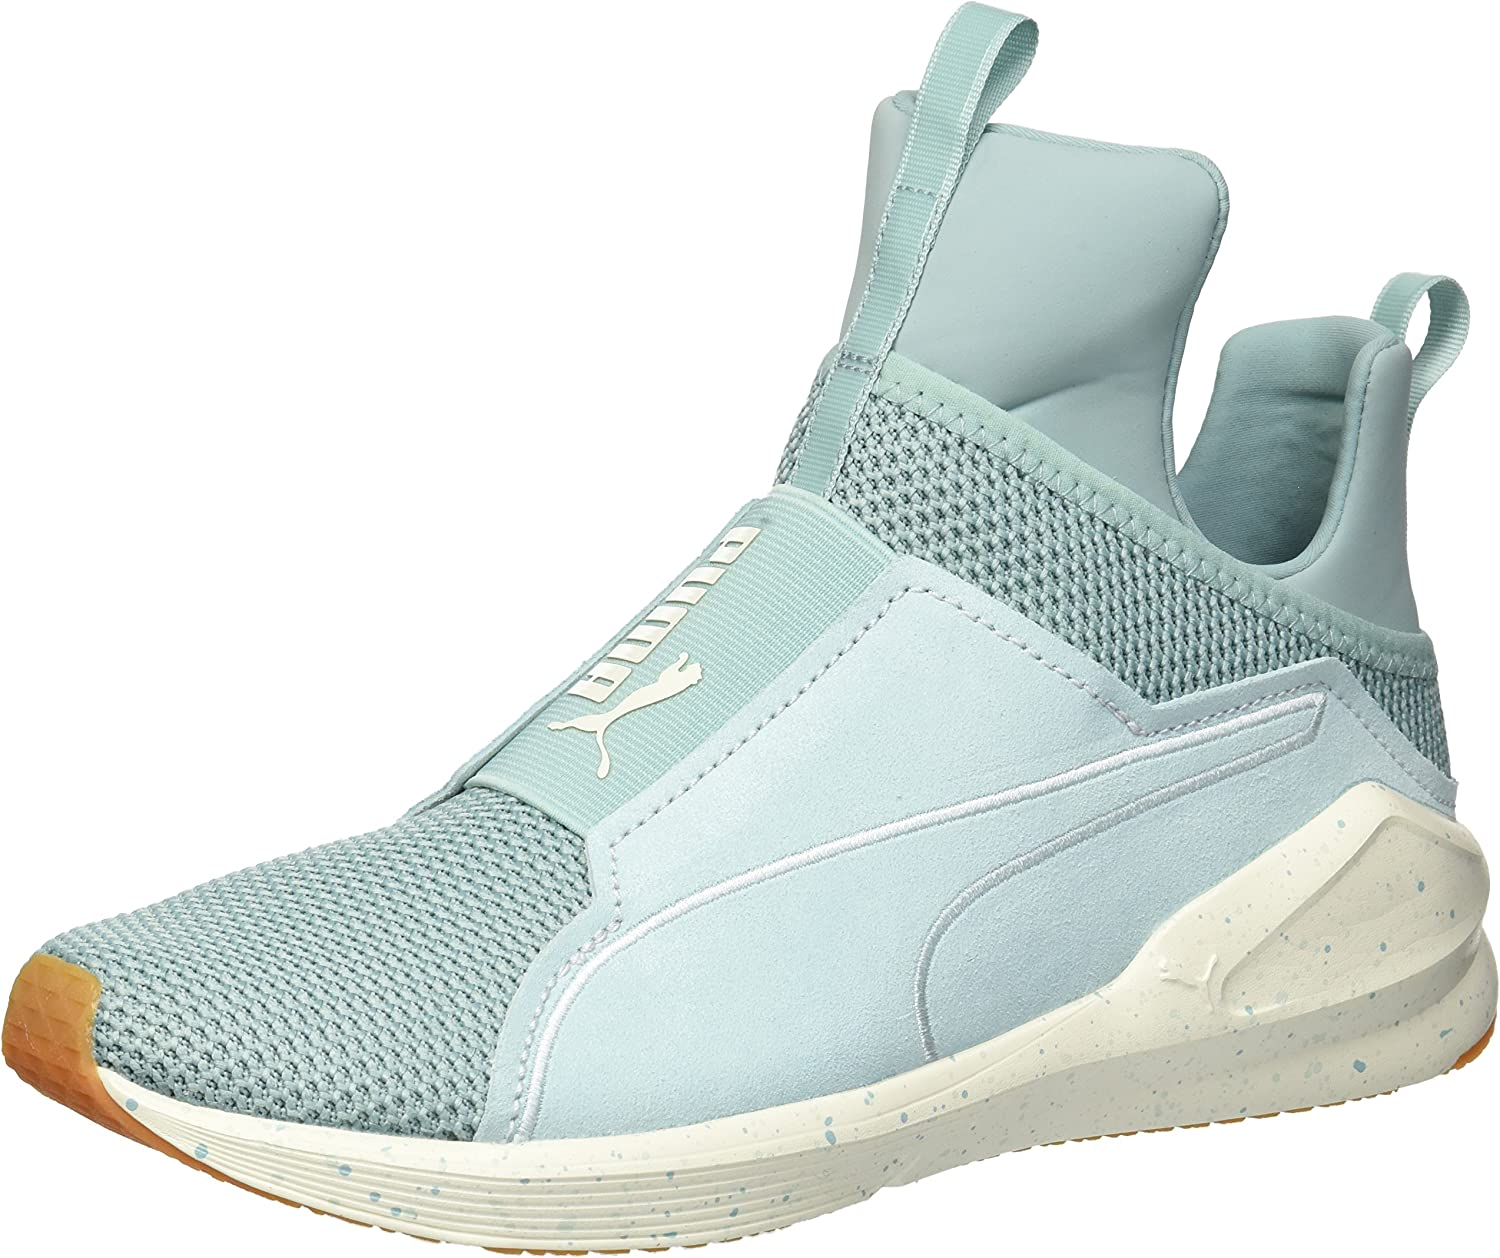 PUMA Women's Fierce Solstice Wn Sneaker